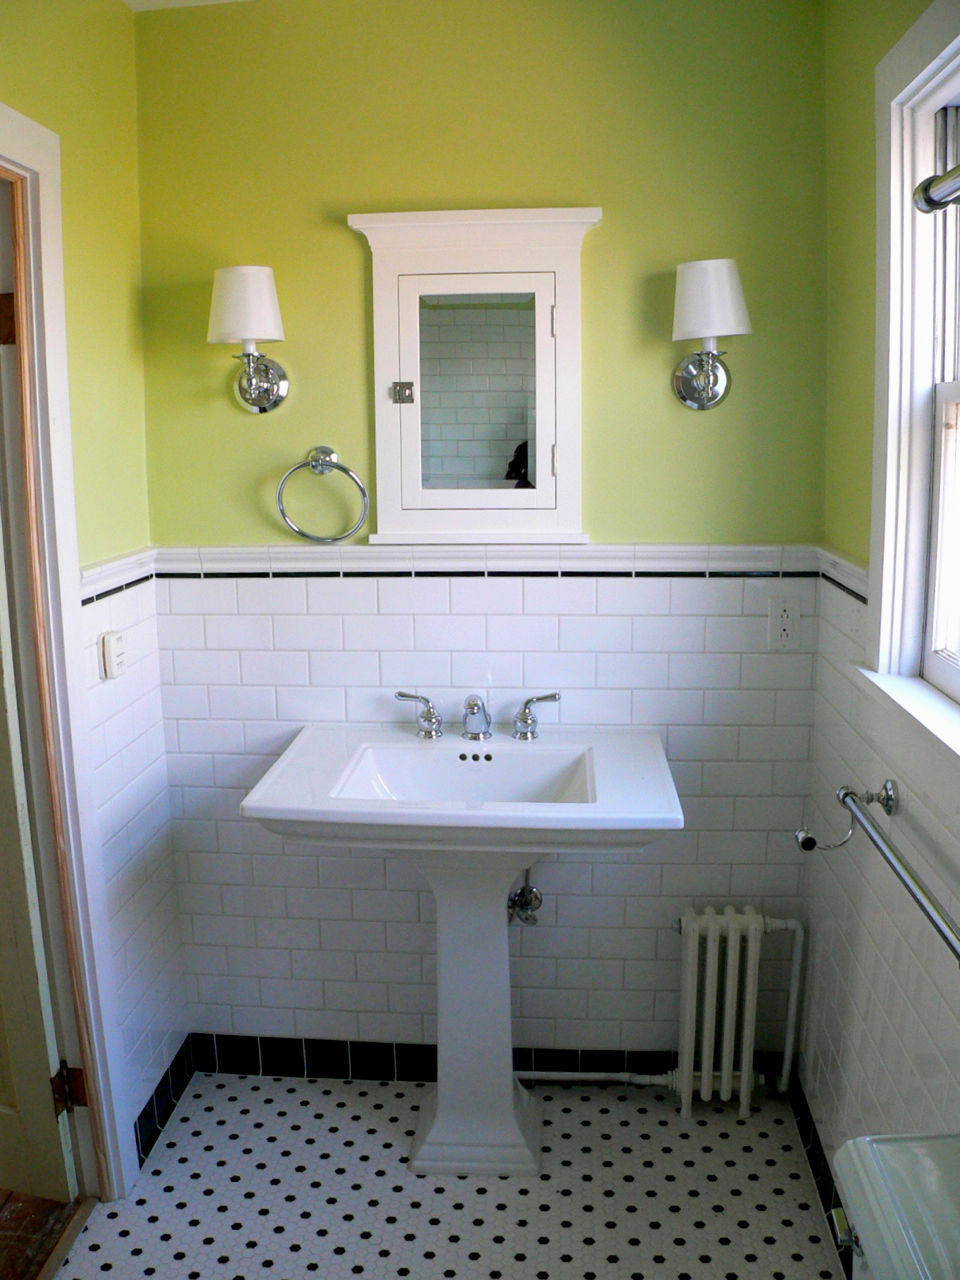 awesome how to remodel a bathroom pattern-New How to Remodel A Bathroom Image